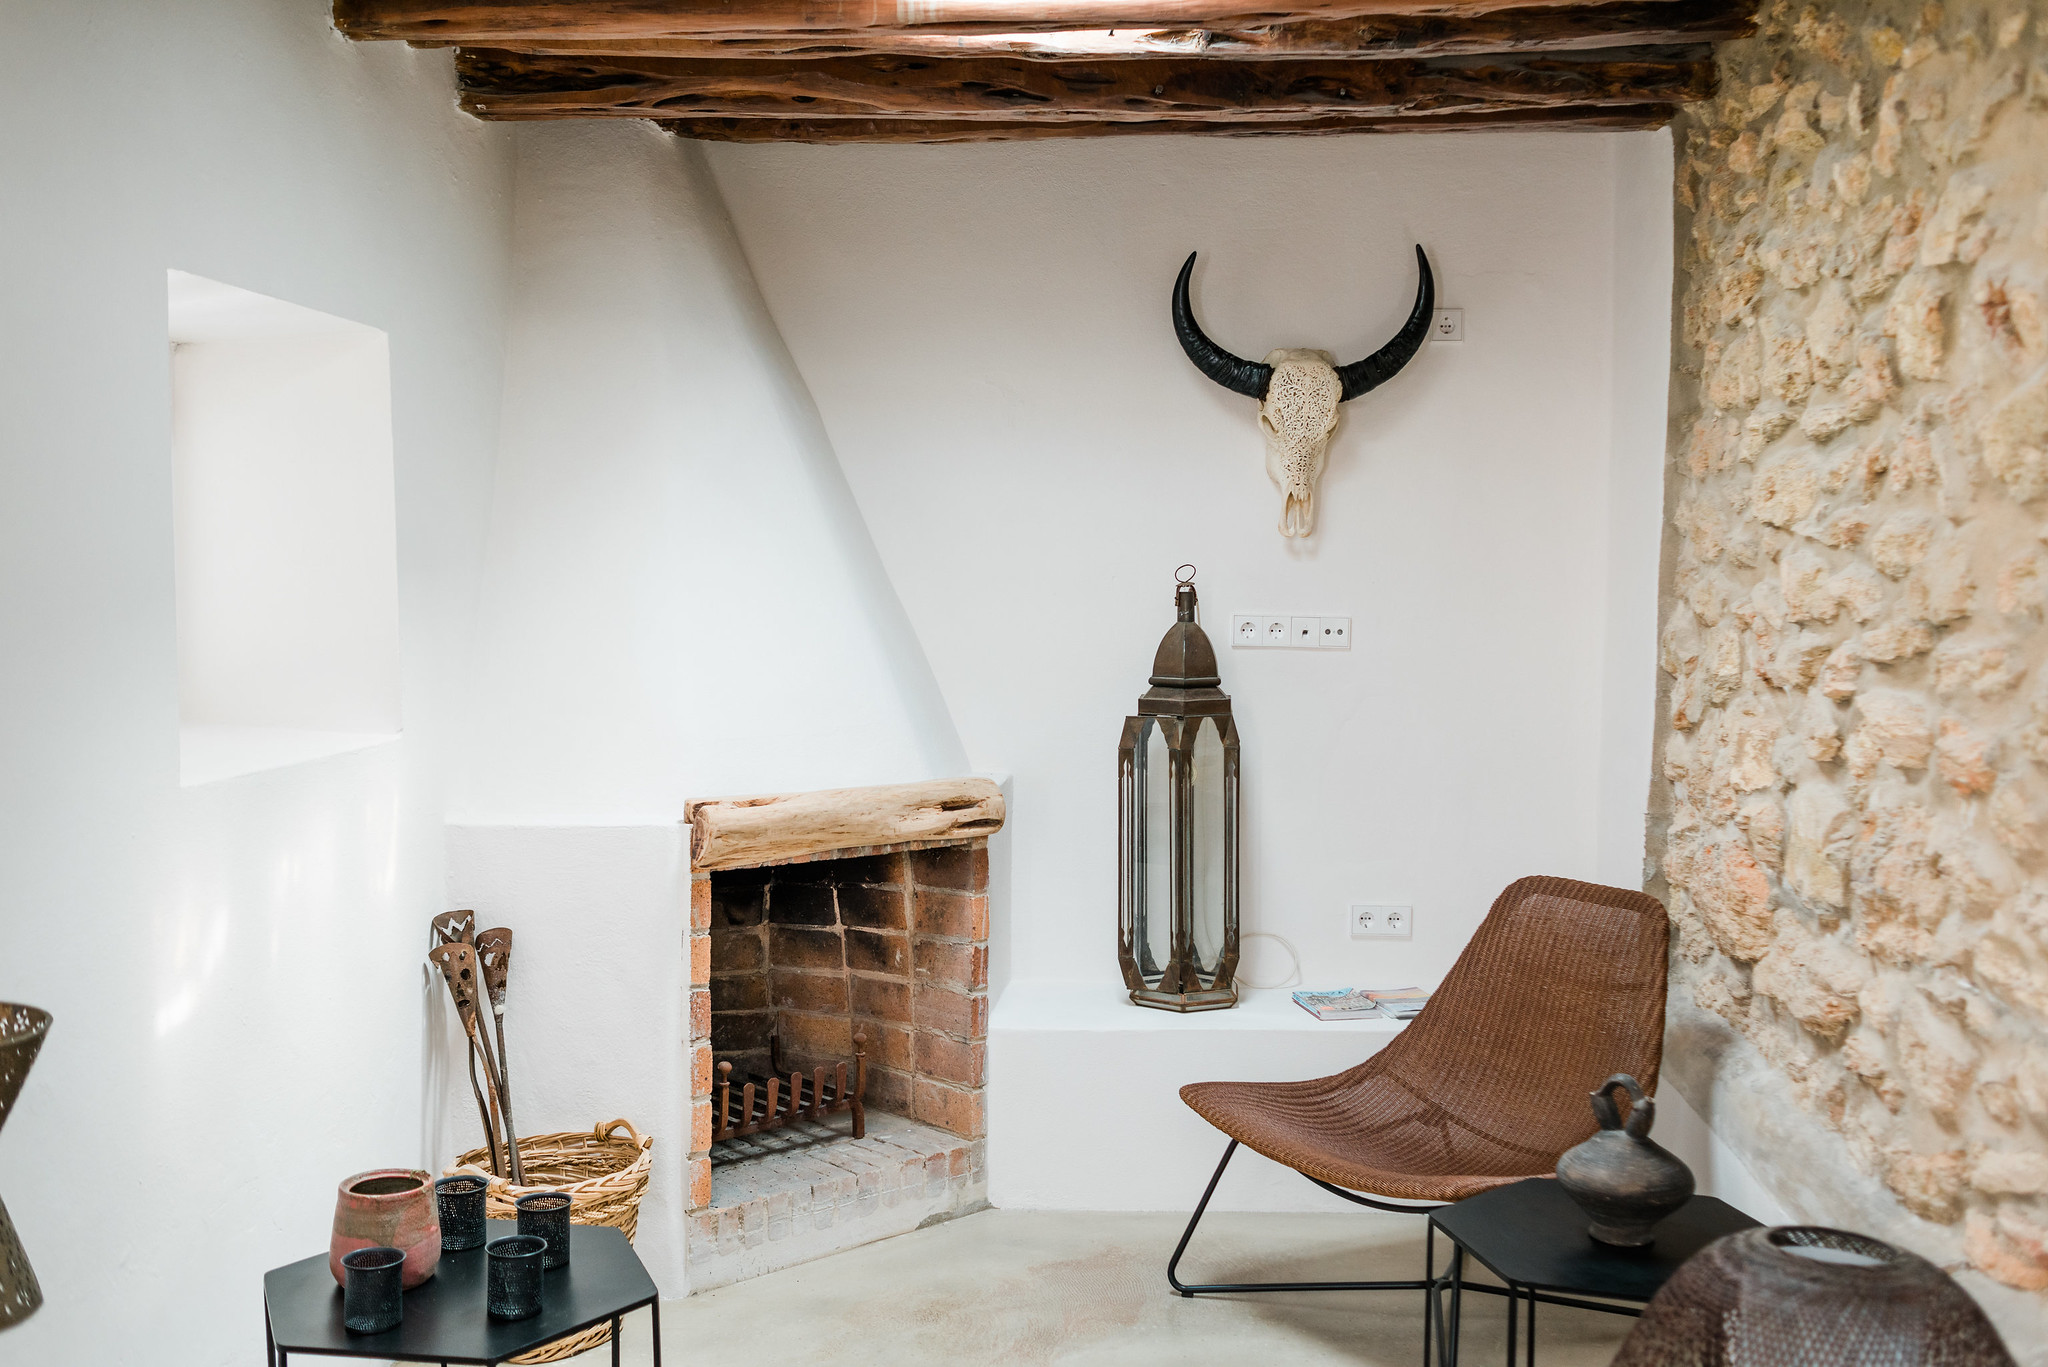 https://www.white-ibiza.com/wp-content/uploads/2020/06/white-ibiza-villas-can-calma-interior-fireplace.jpg